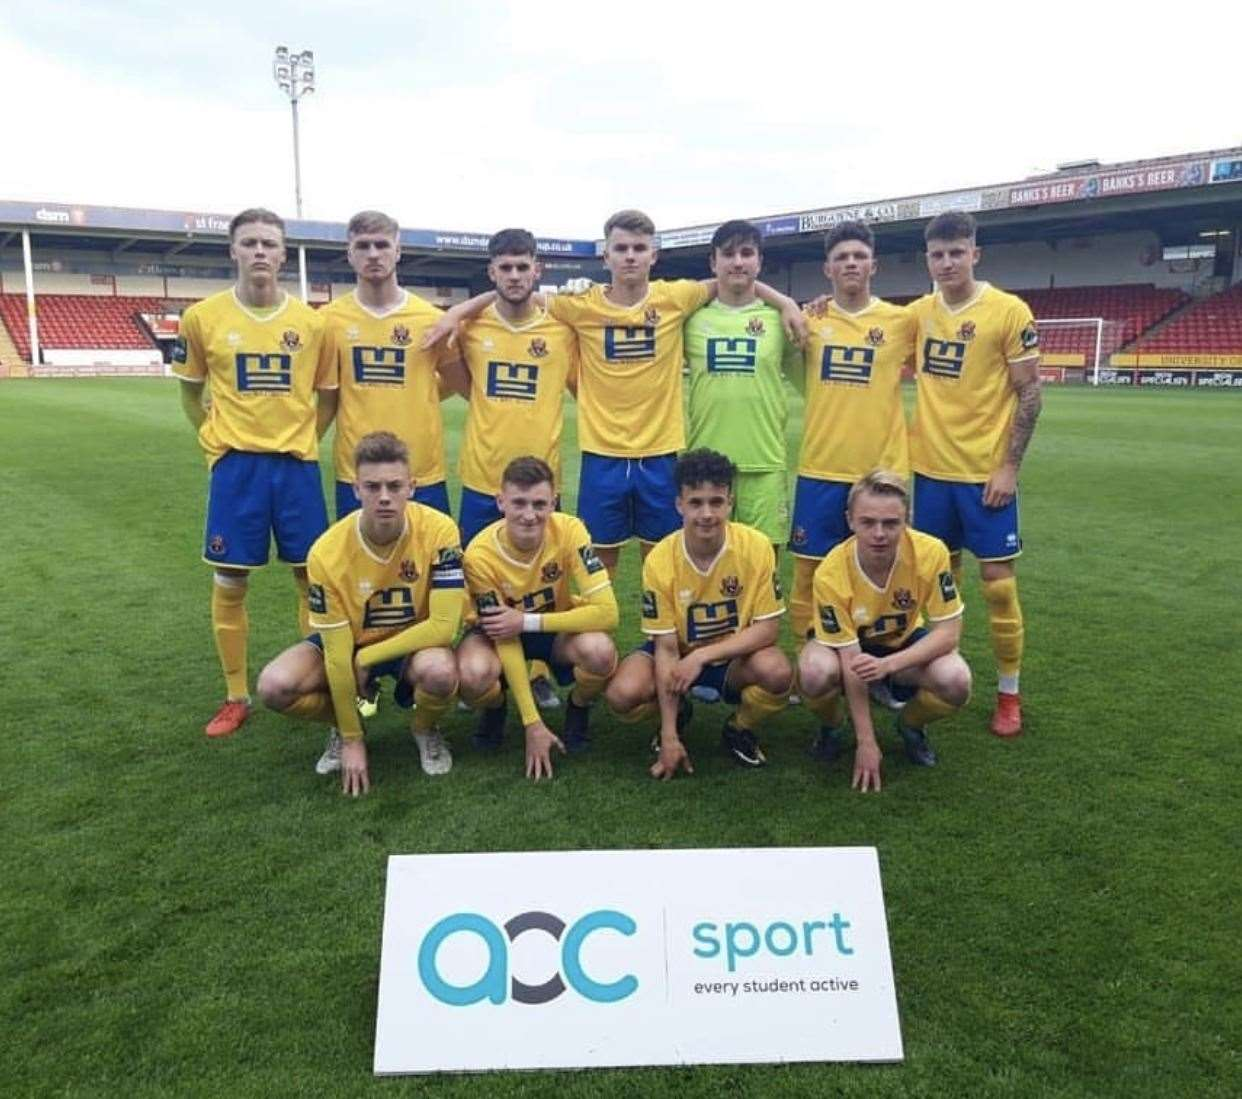 AFC Sudbury Academy side at Walsall FC ahead of playing in the AoC English Colleges FA Sport Under-19 Knockout TrophyPicture: AFC Sudbury (9465811)